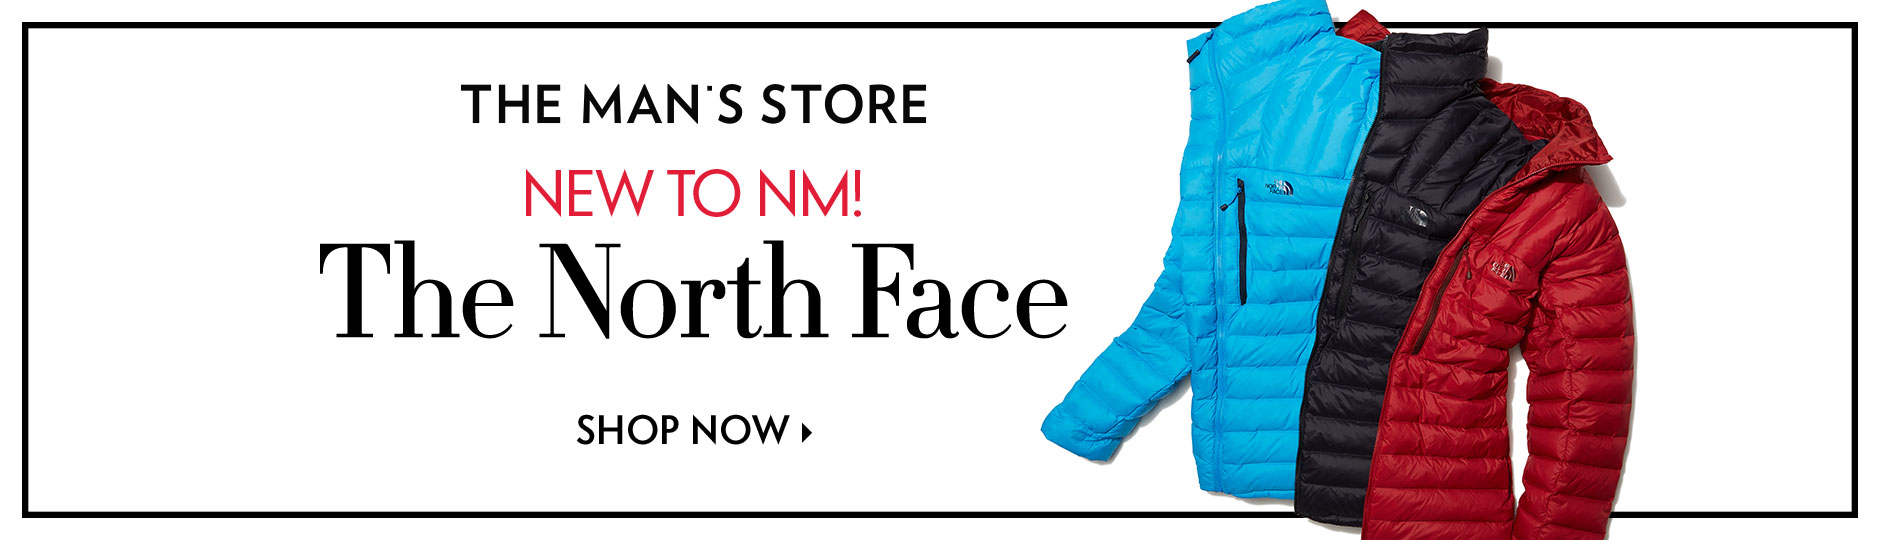 The Man's Store: New to NM! The North Face